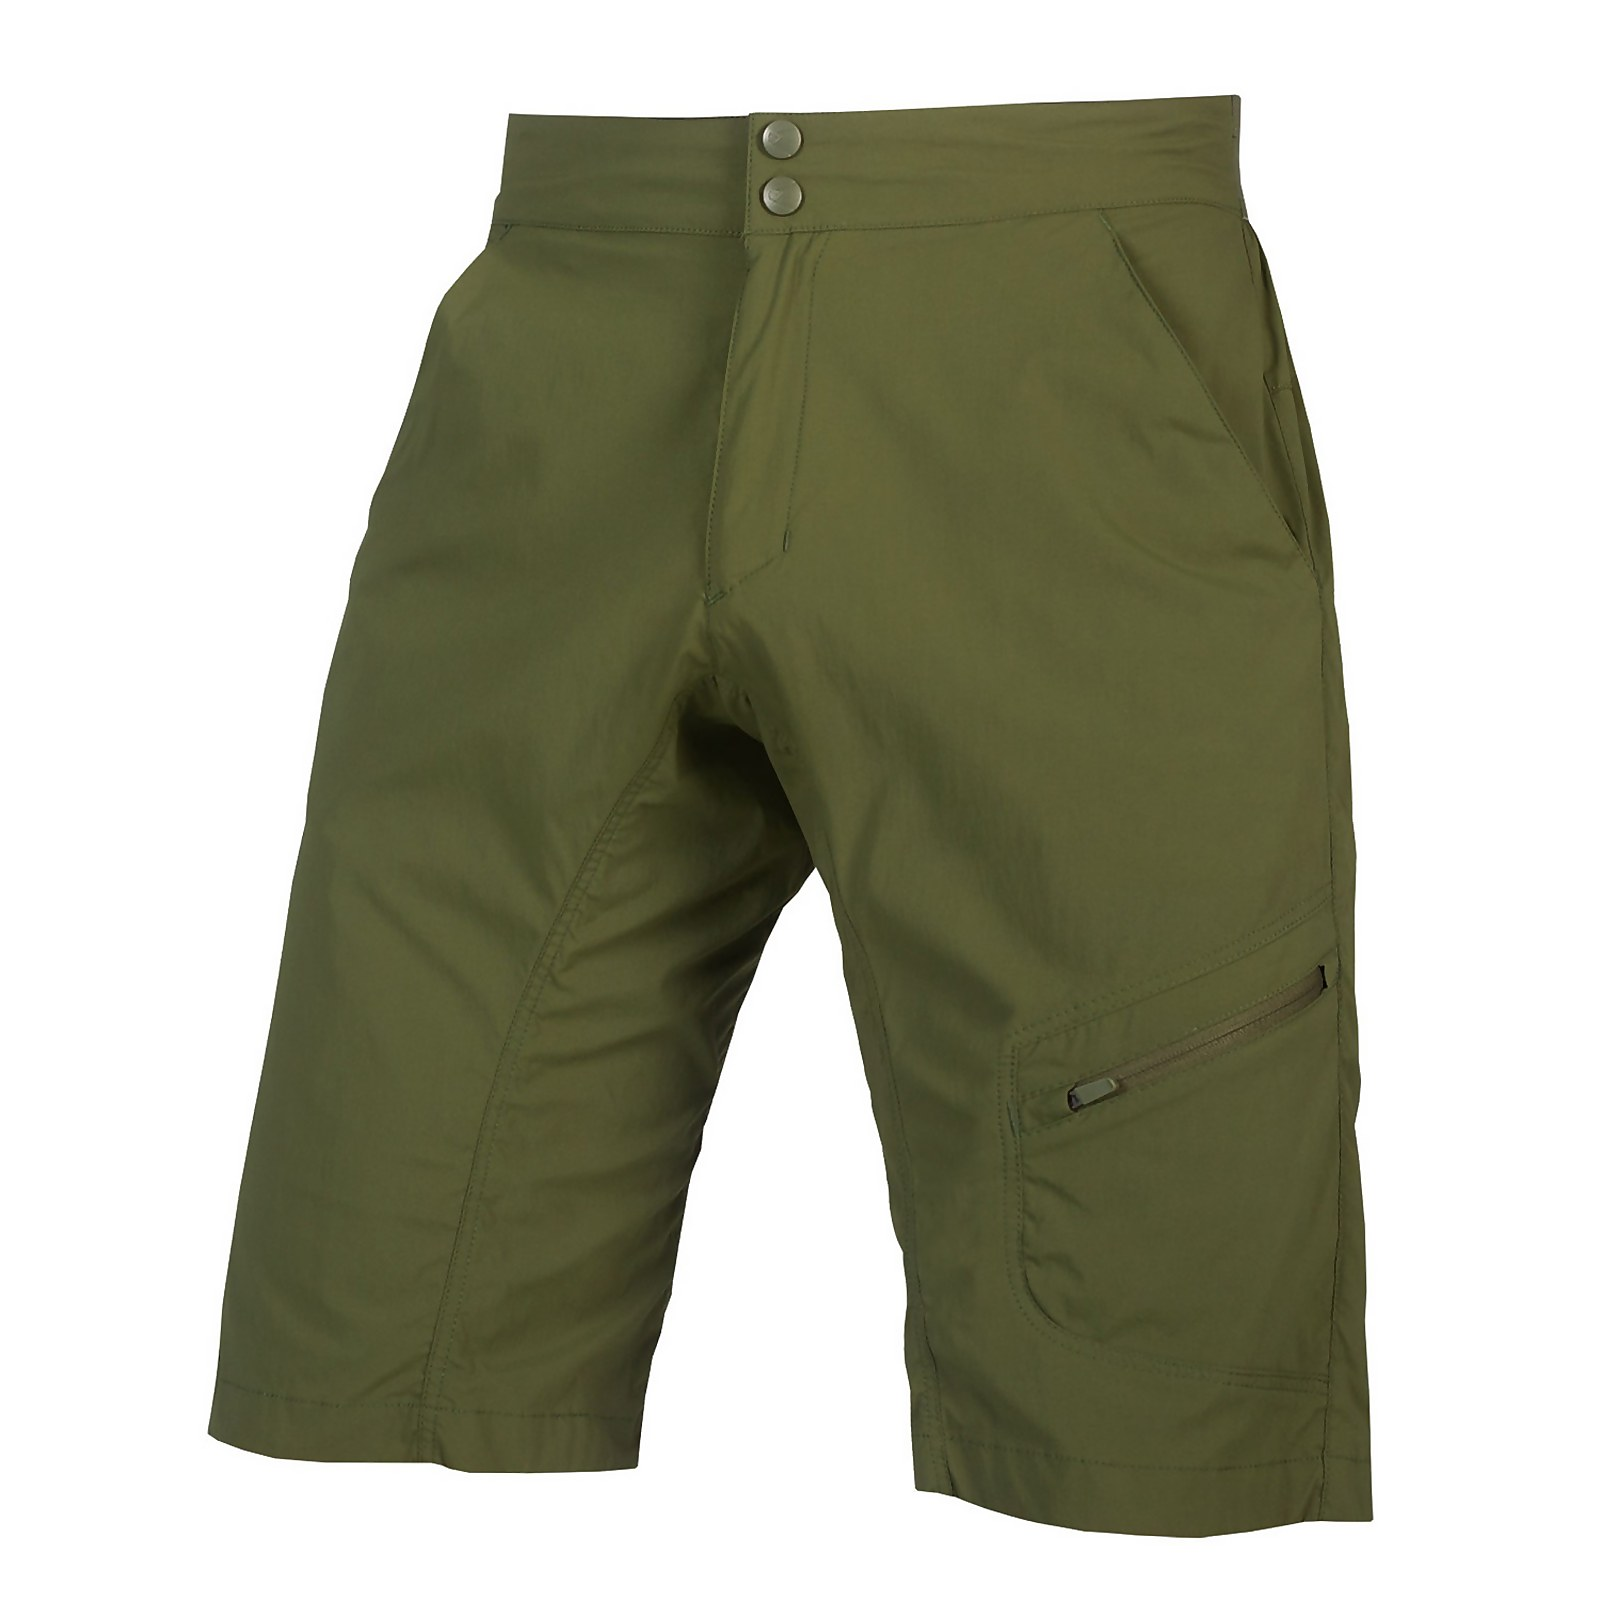 Hummvee Lite Short With Liner - Olive Green - M